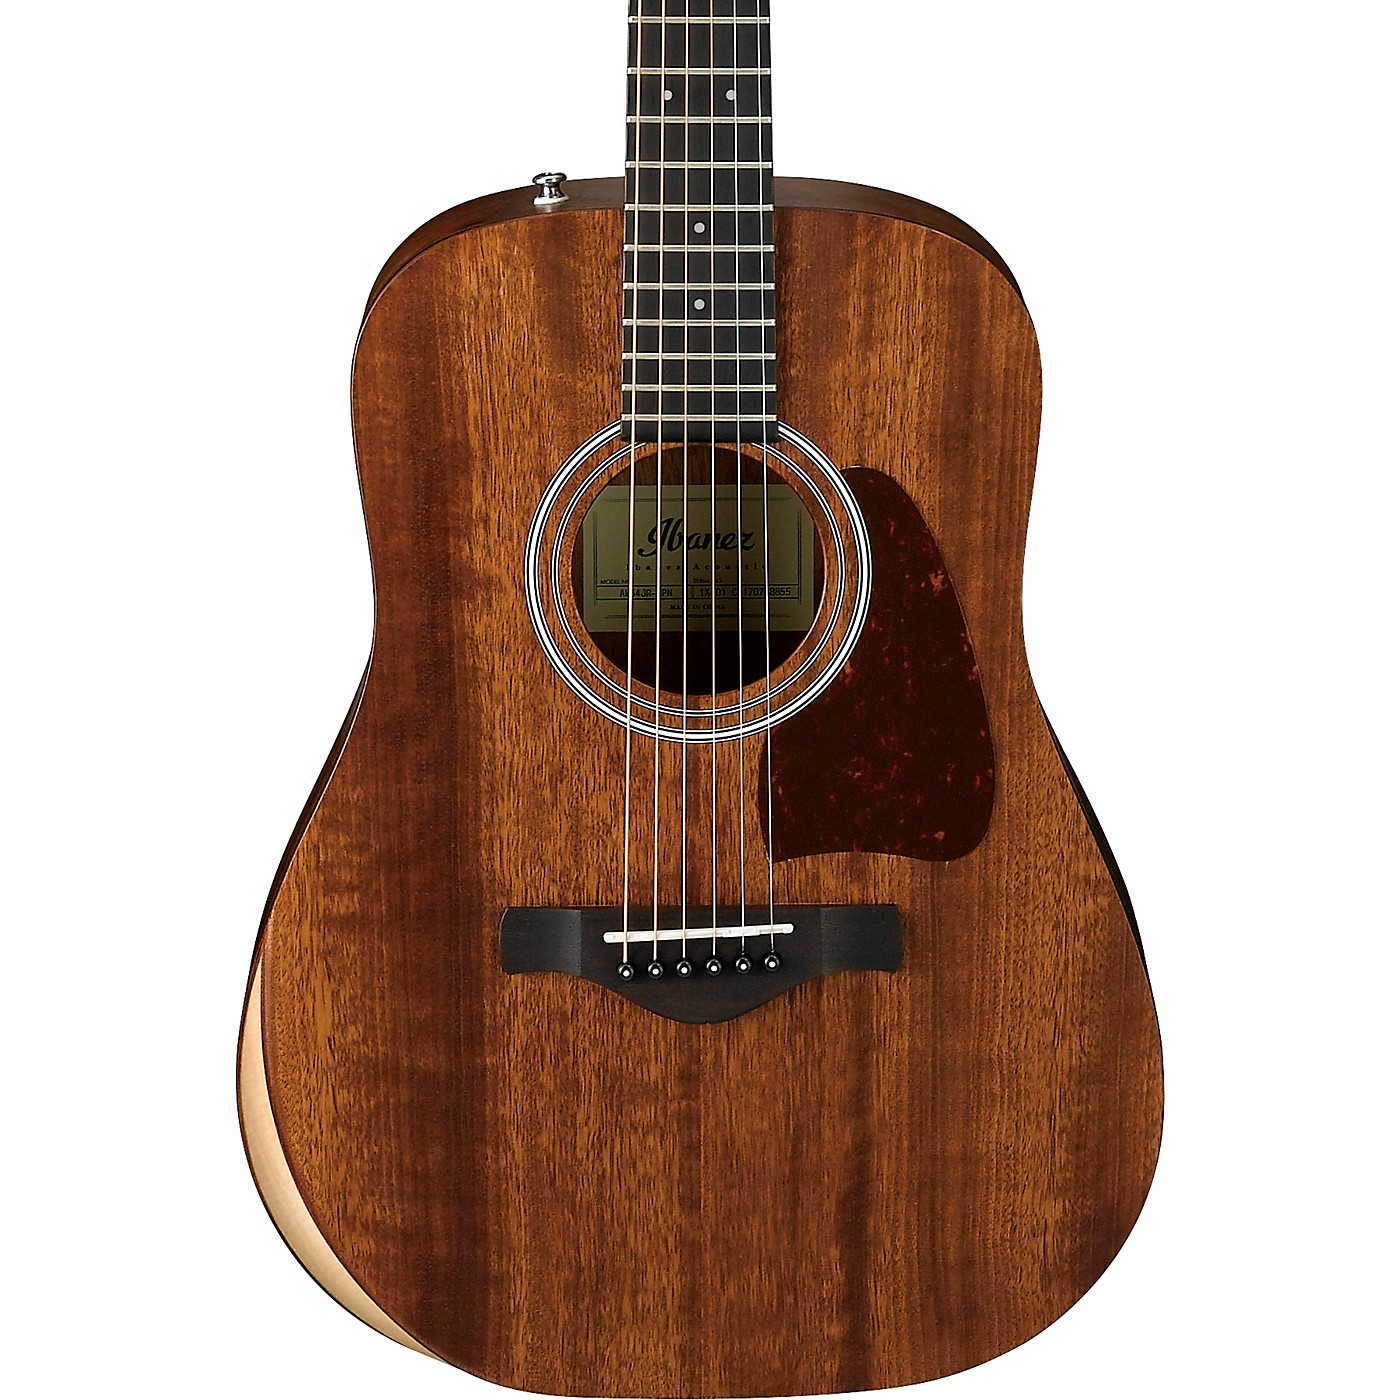 Ibanez AW54JR-OPN Dreadnought Acoustic Guitar thumbnail